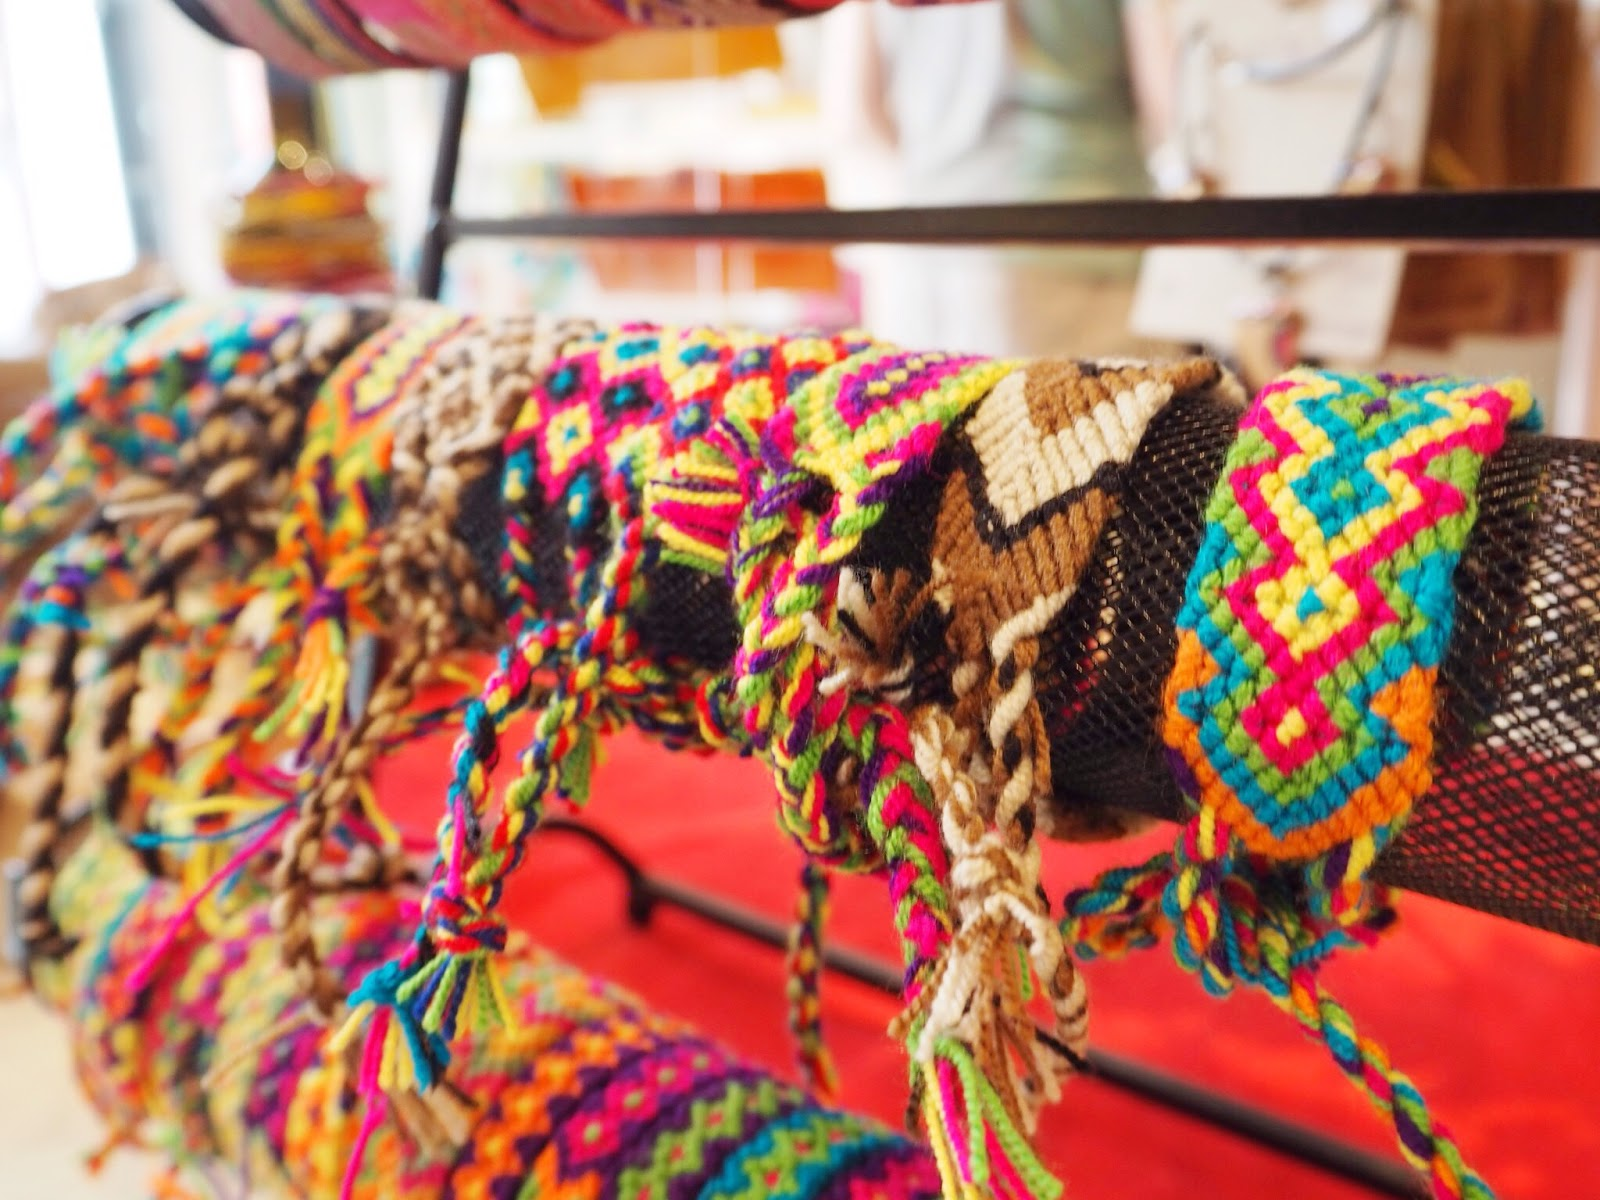 Getintosingapore Where To Find The Best Souvenirs In